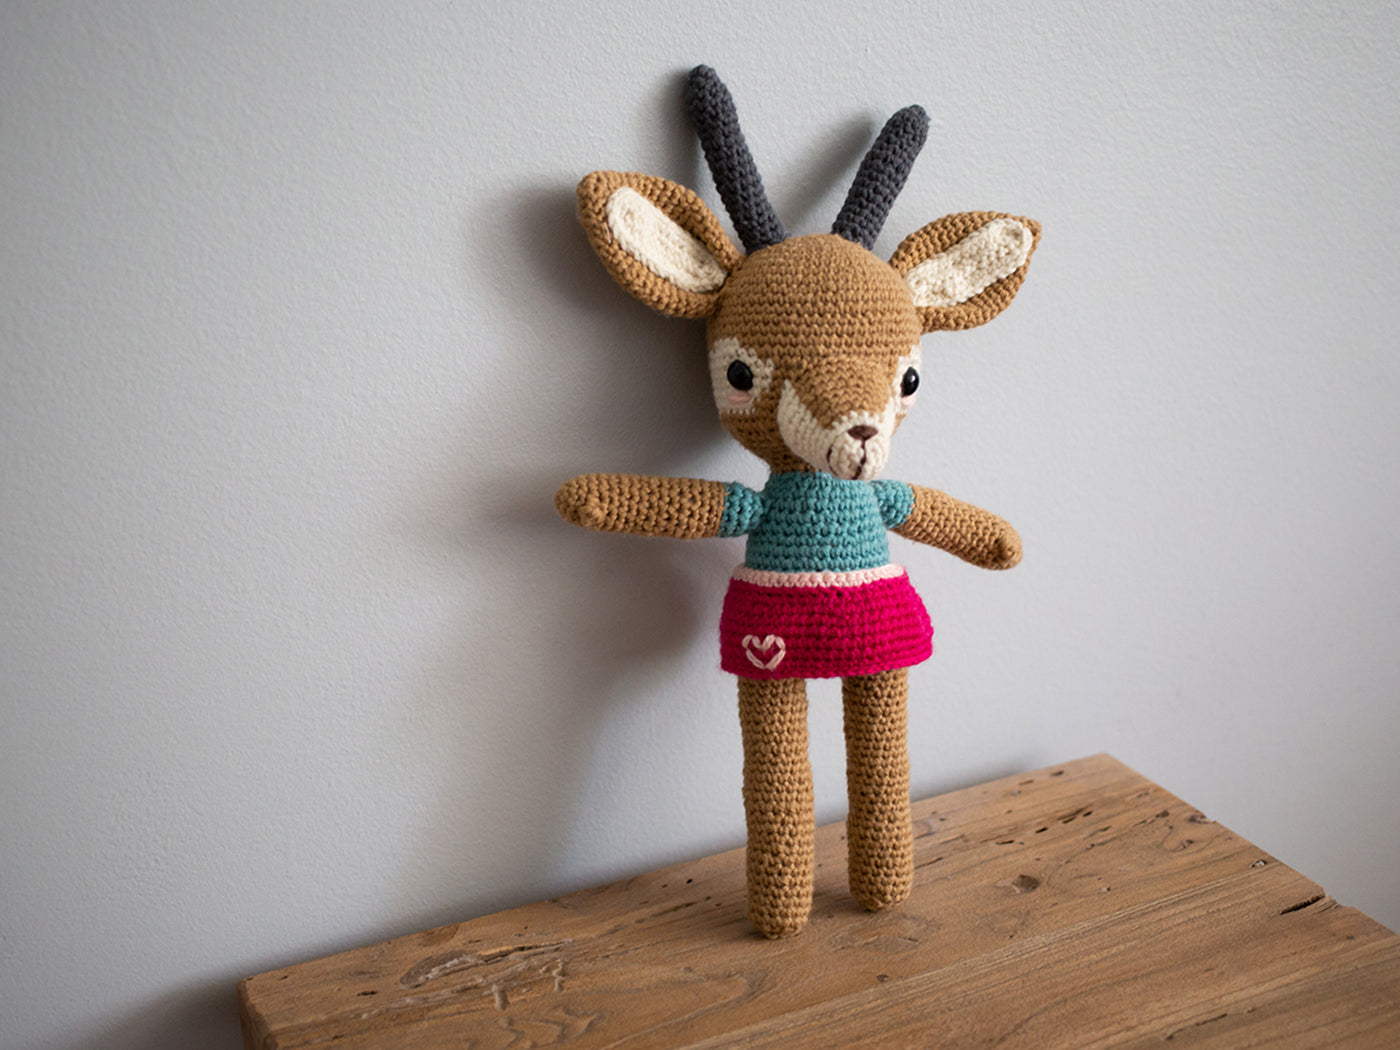 Tiffani's crocheted amigarumi Audrey Gazelle